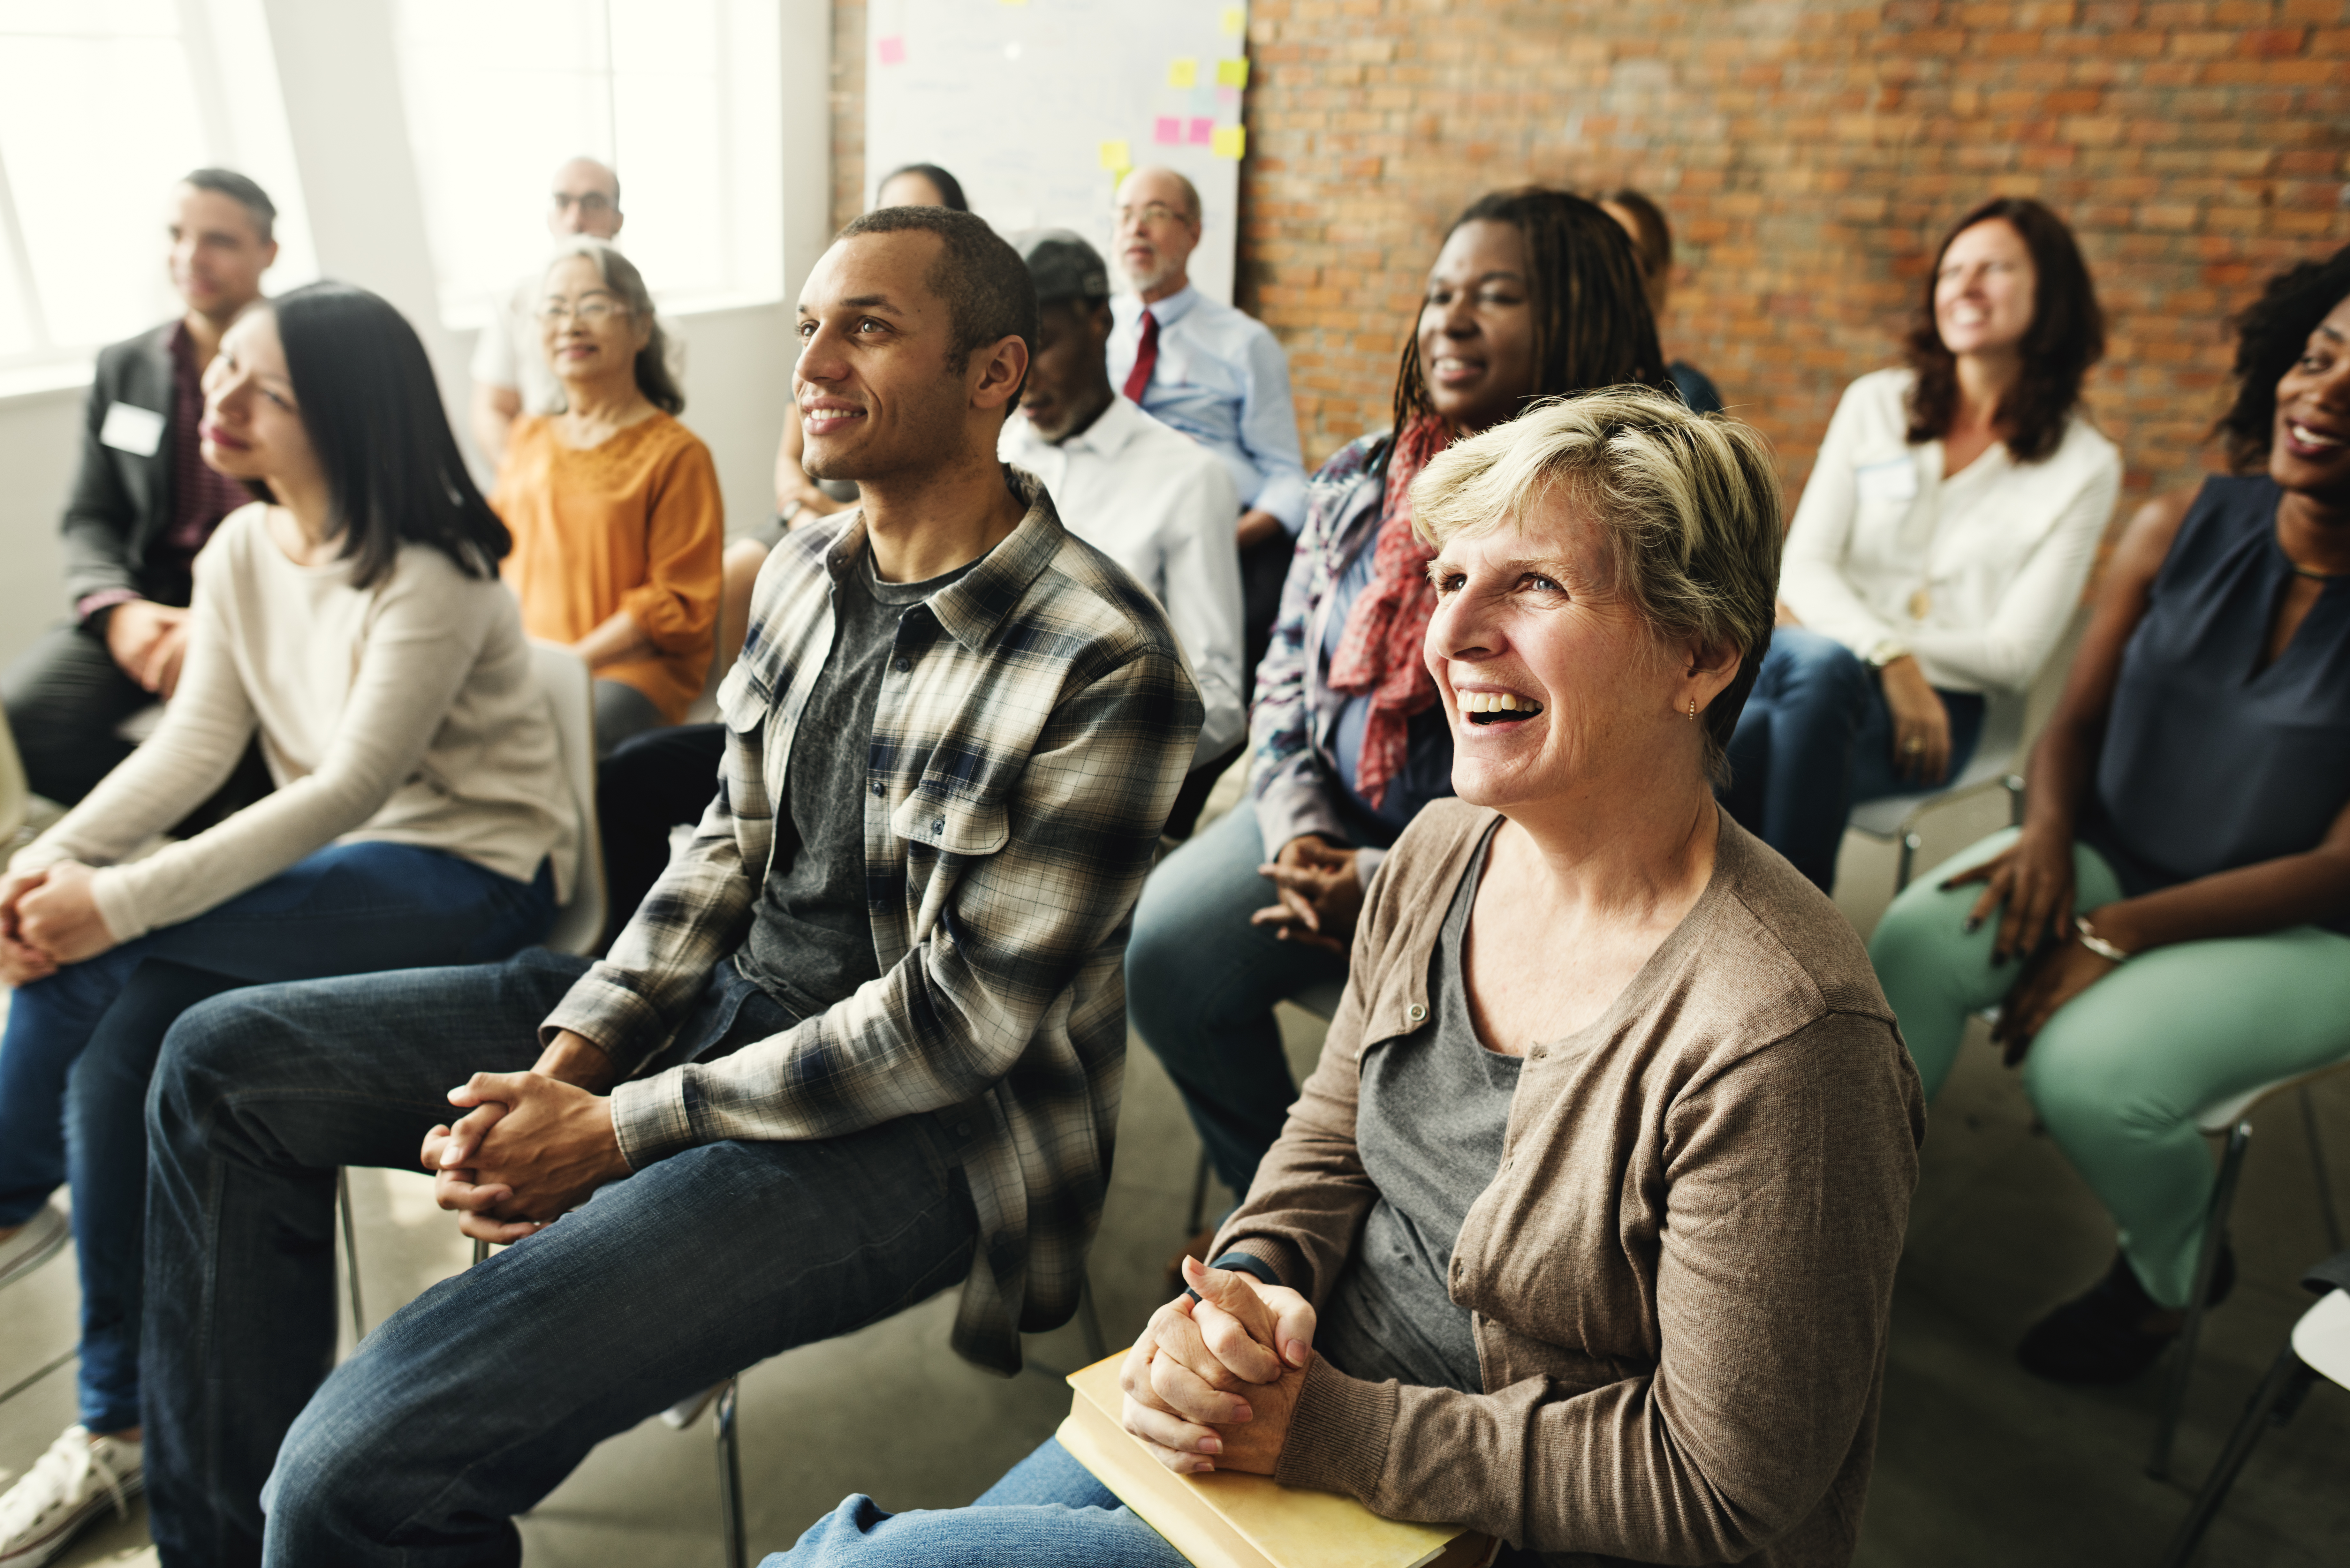 People Diversity Audience Listening Fun Happiness Concept